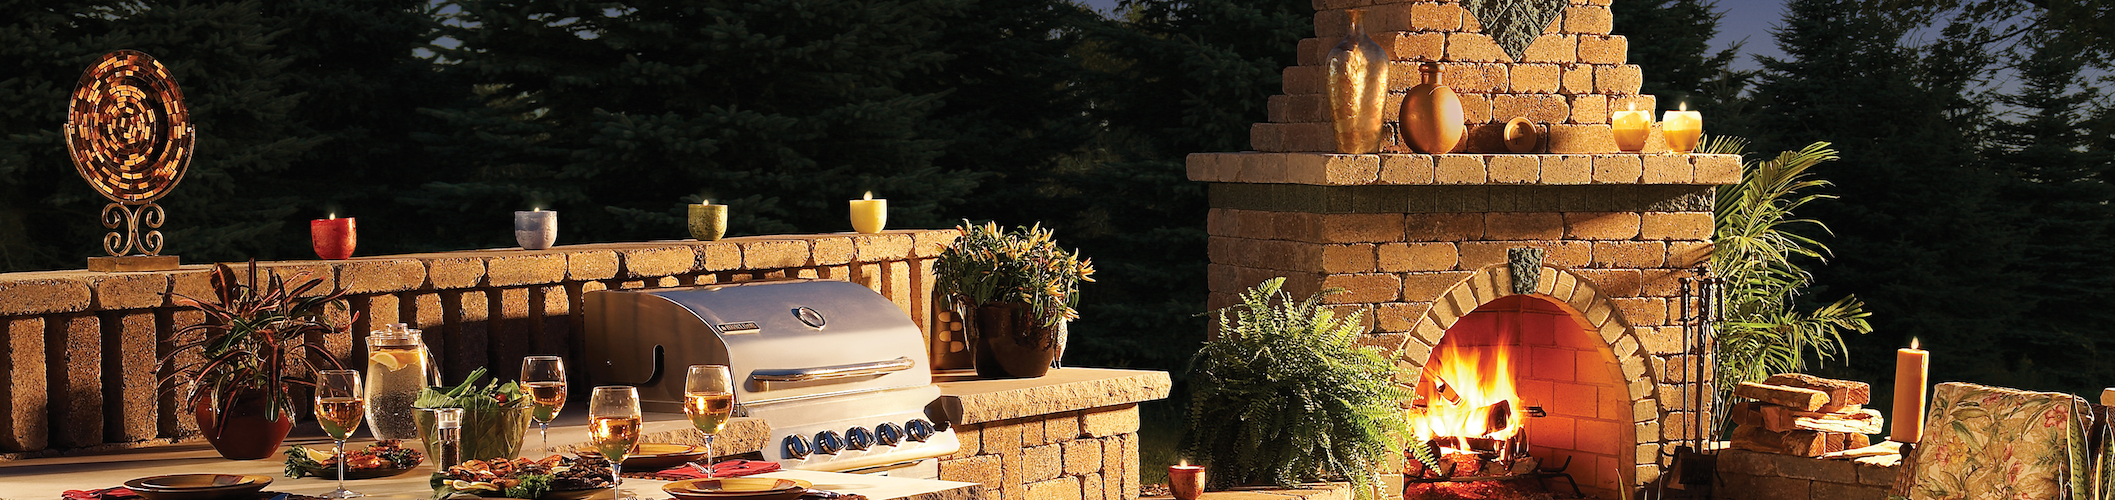 Wisconsin-Based-Brick-and-Stone-supply-for-patios-and-outdoor-kitchens